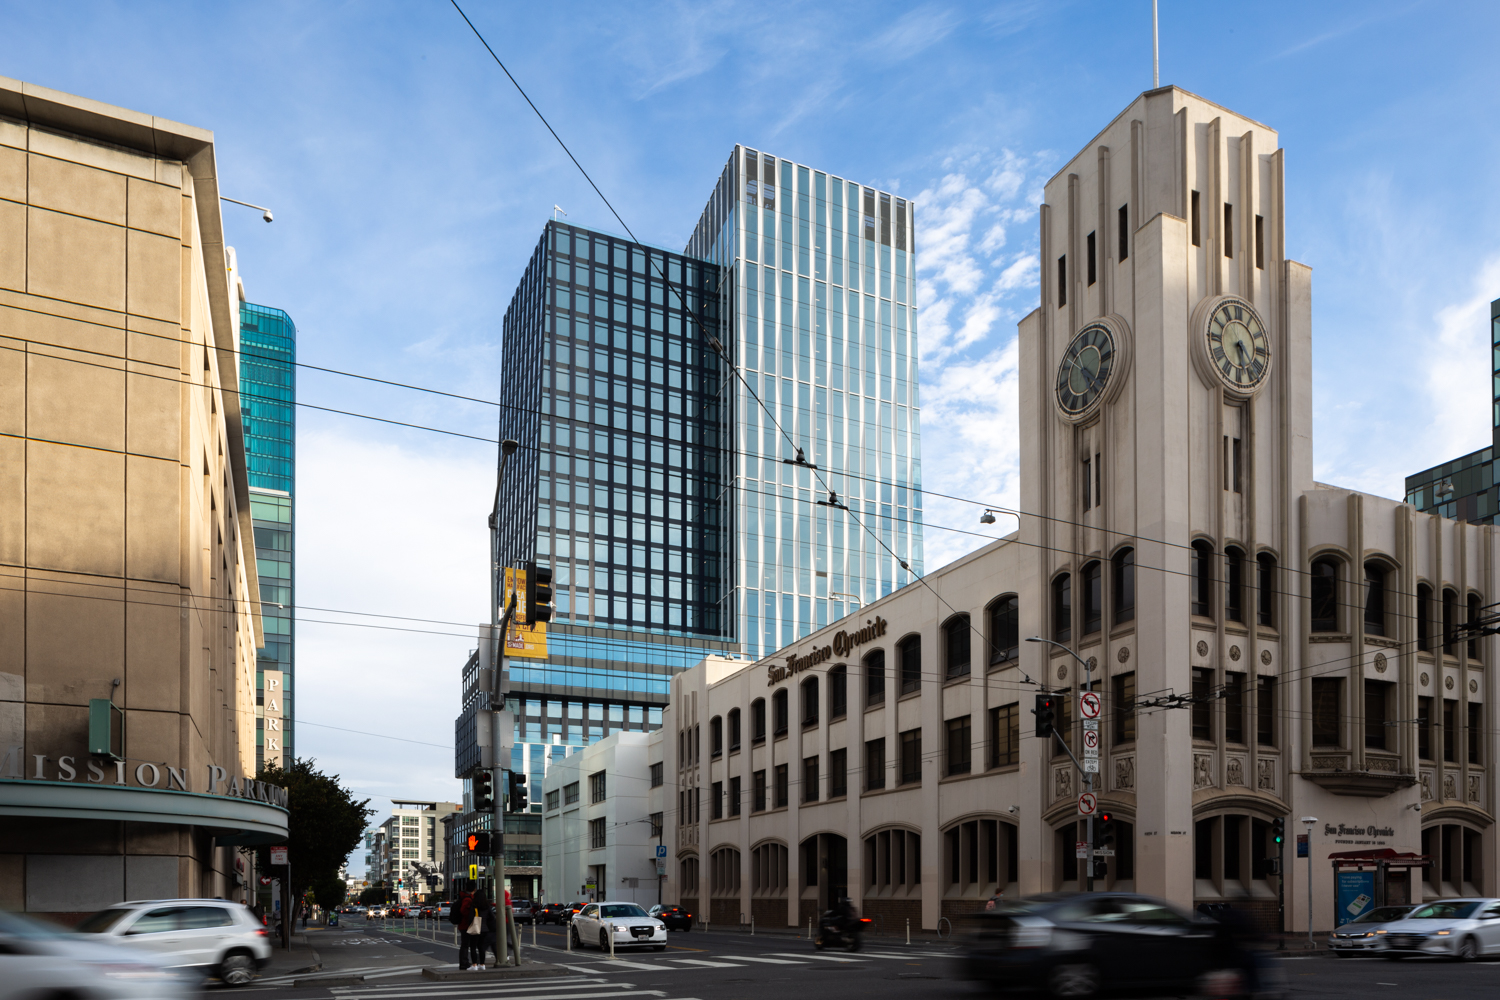 5M office tower at 415 Natoma Street and the former SF Chronicle building, image by Andrew Campbell Nelson